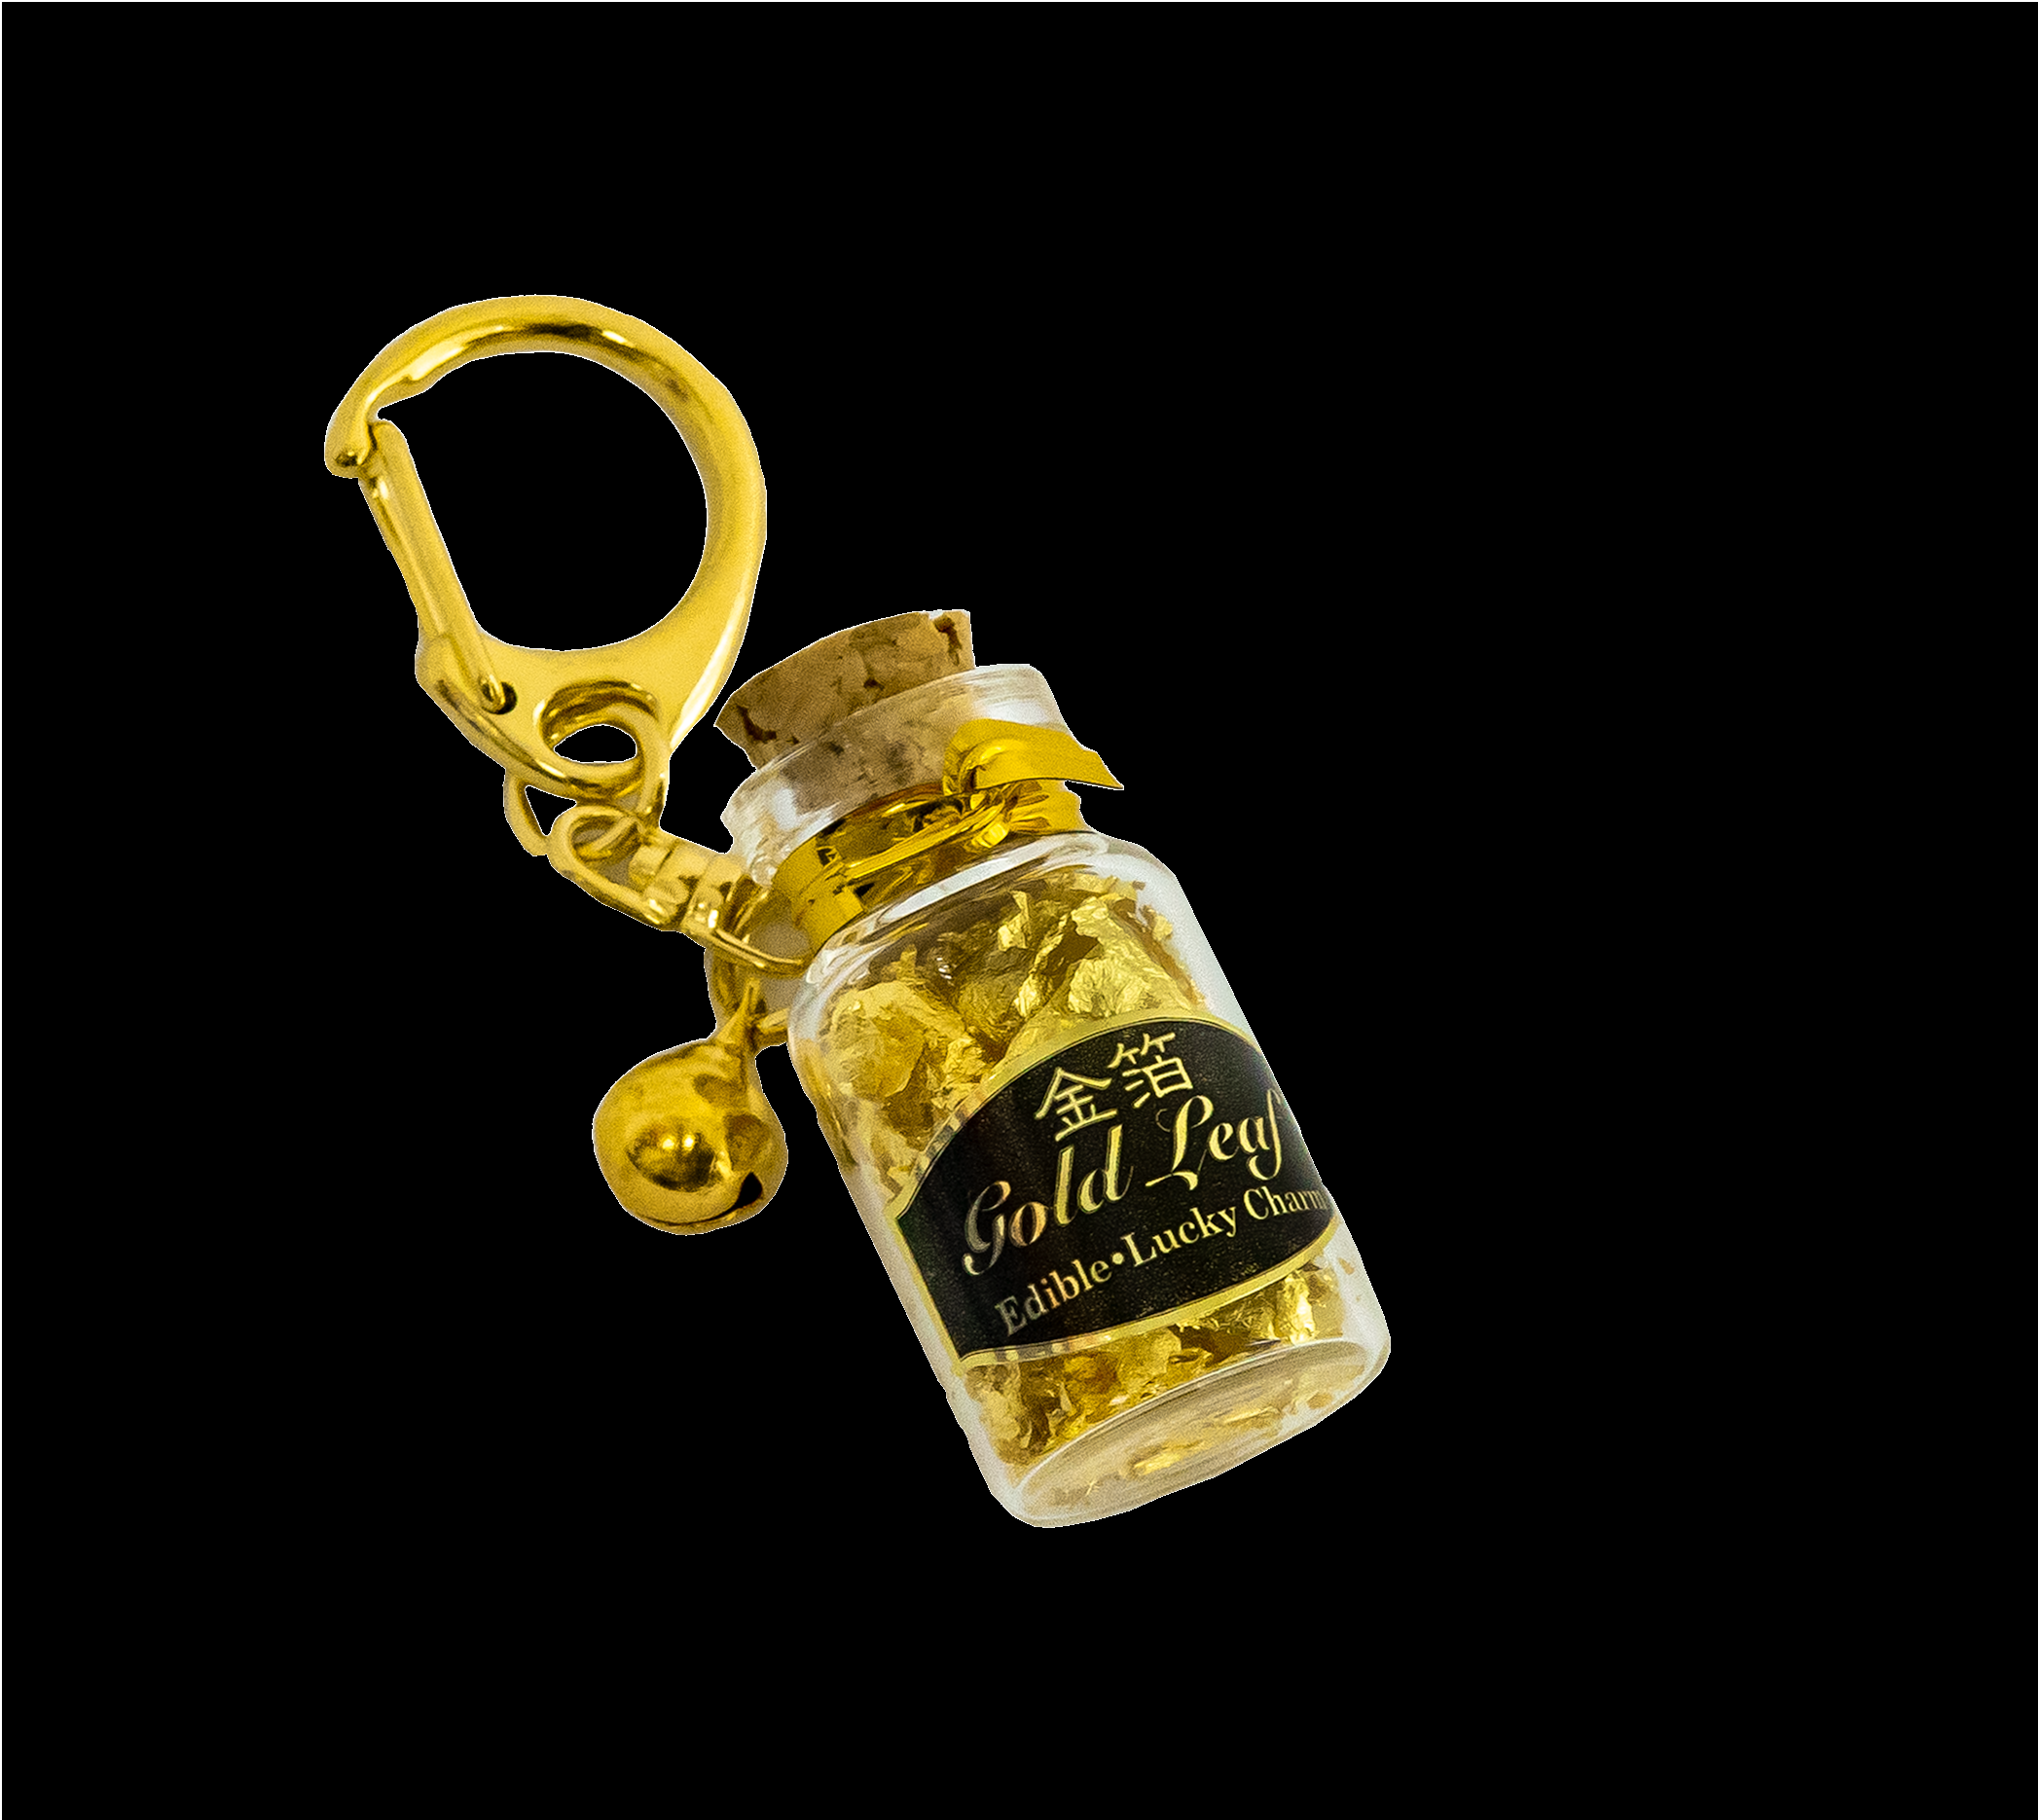 Gold leaf in a small bottle (Original Package)